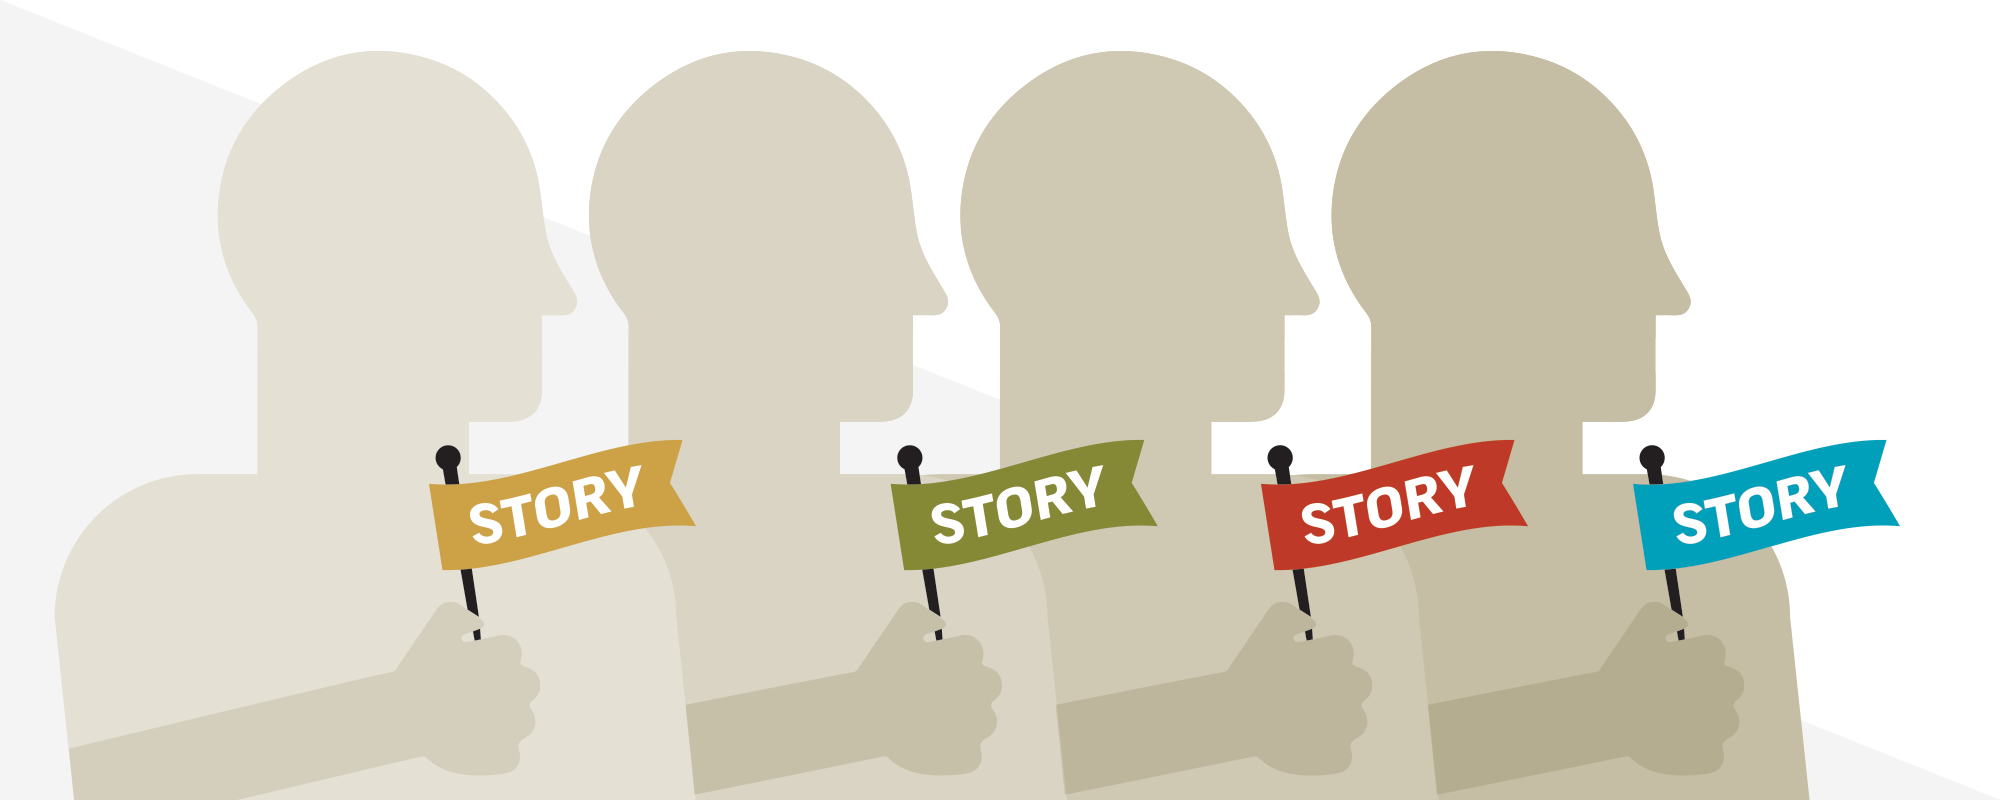 Use storytelling for sales